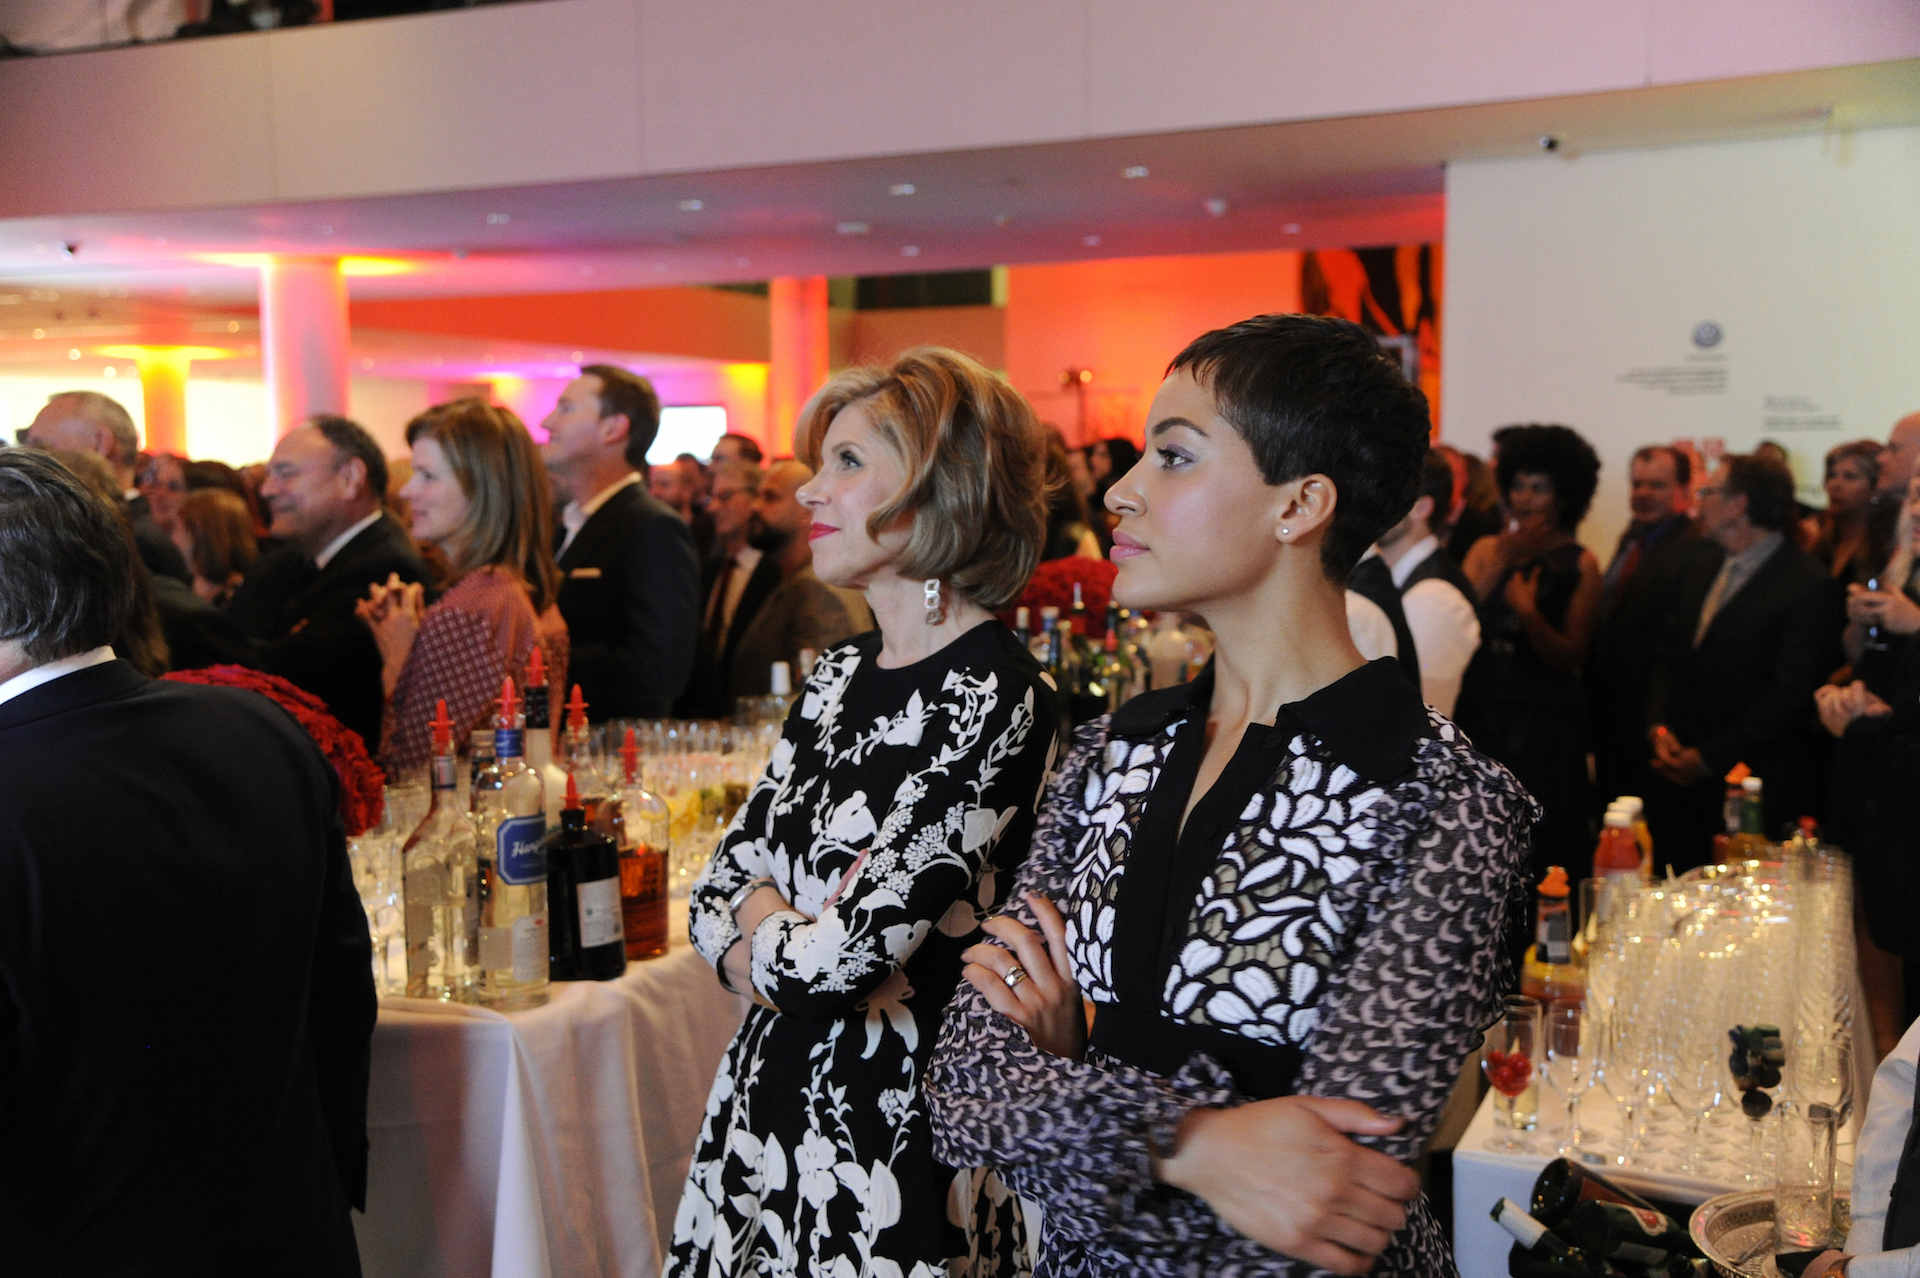 Christine Baranski and Cush Jumbo